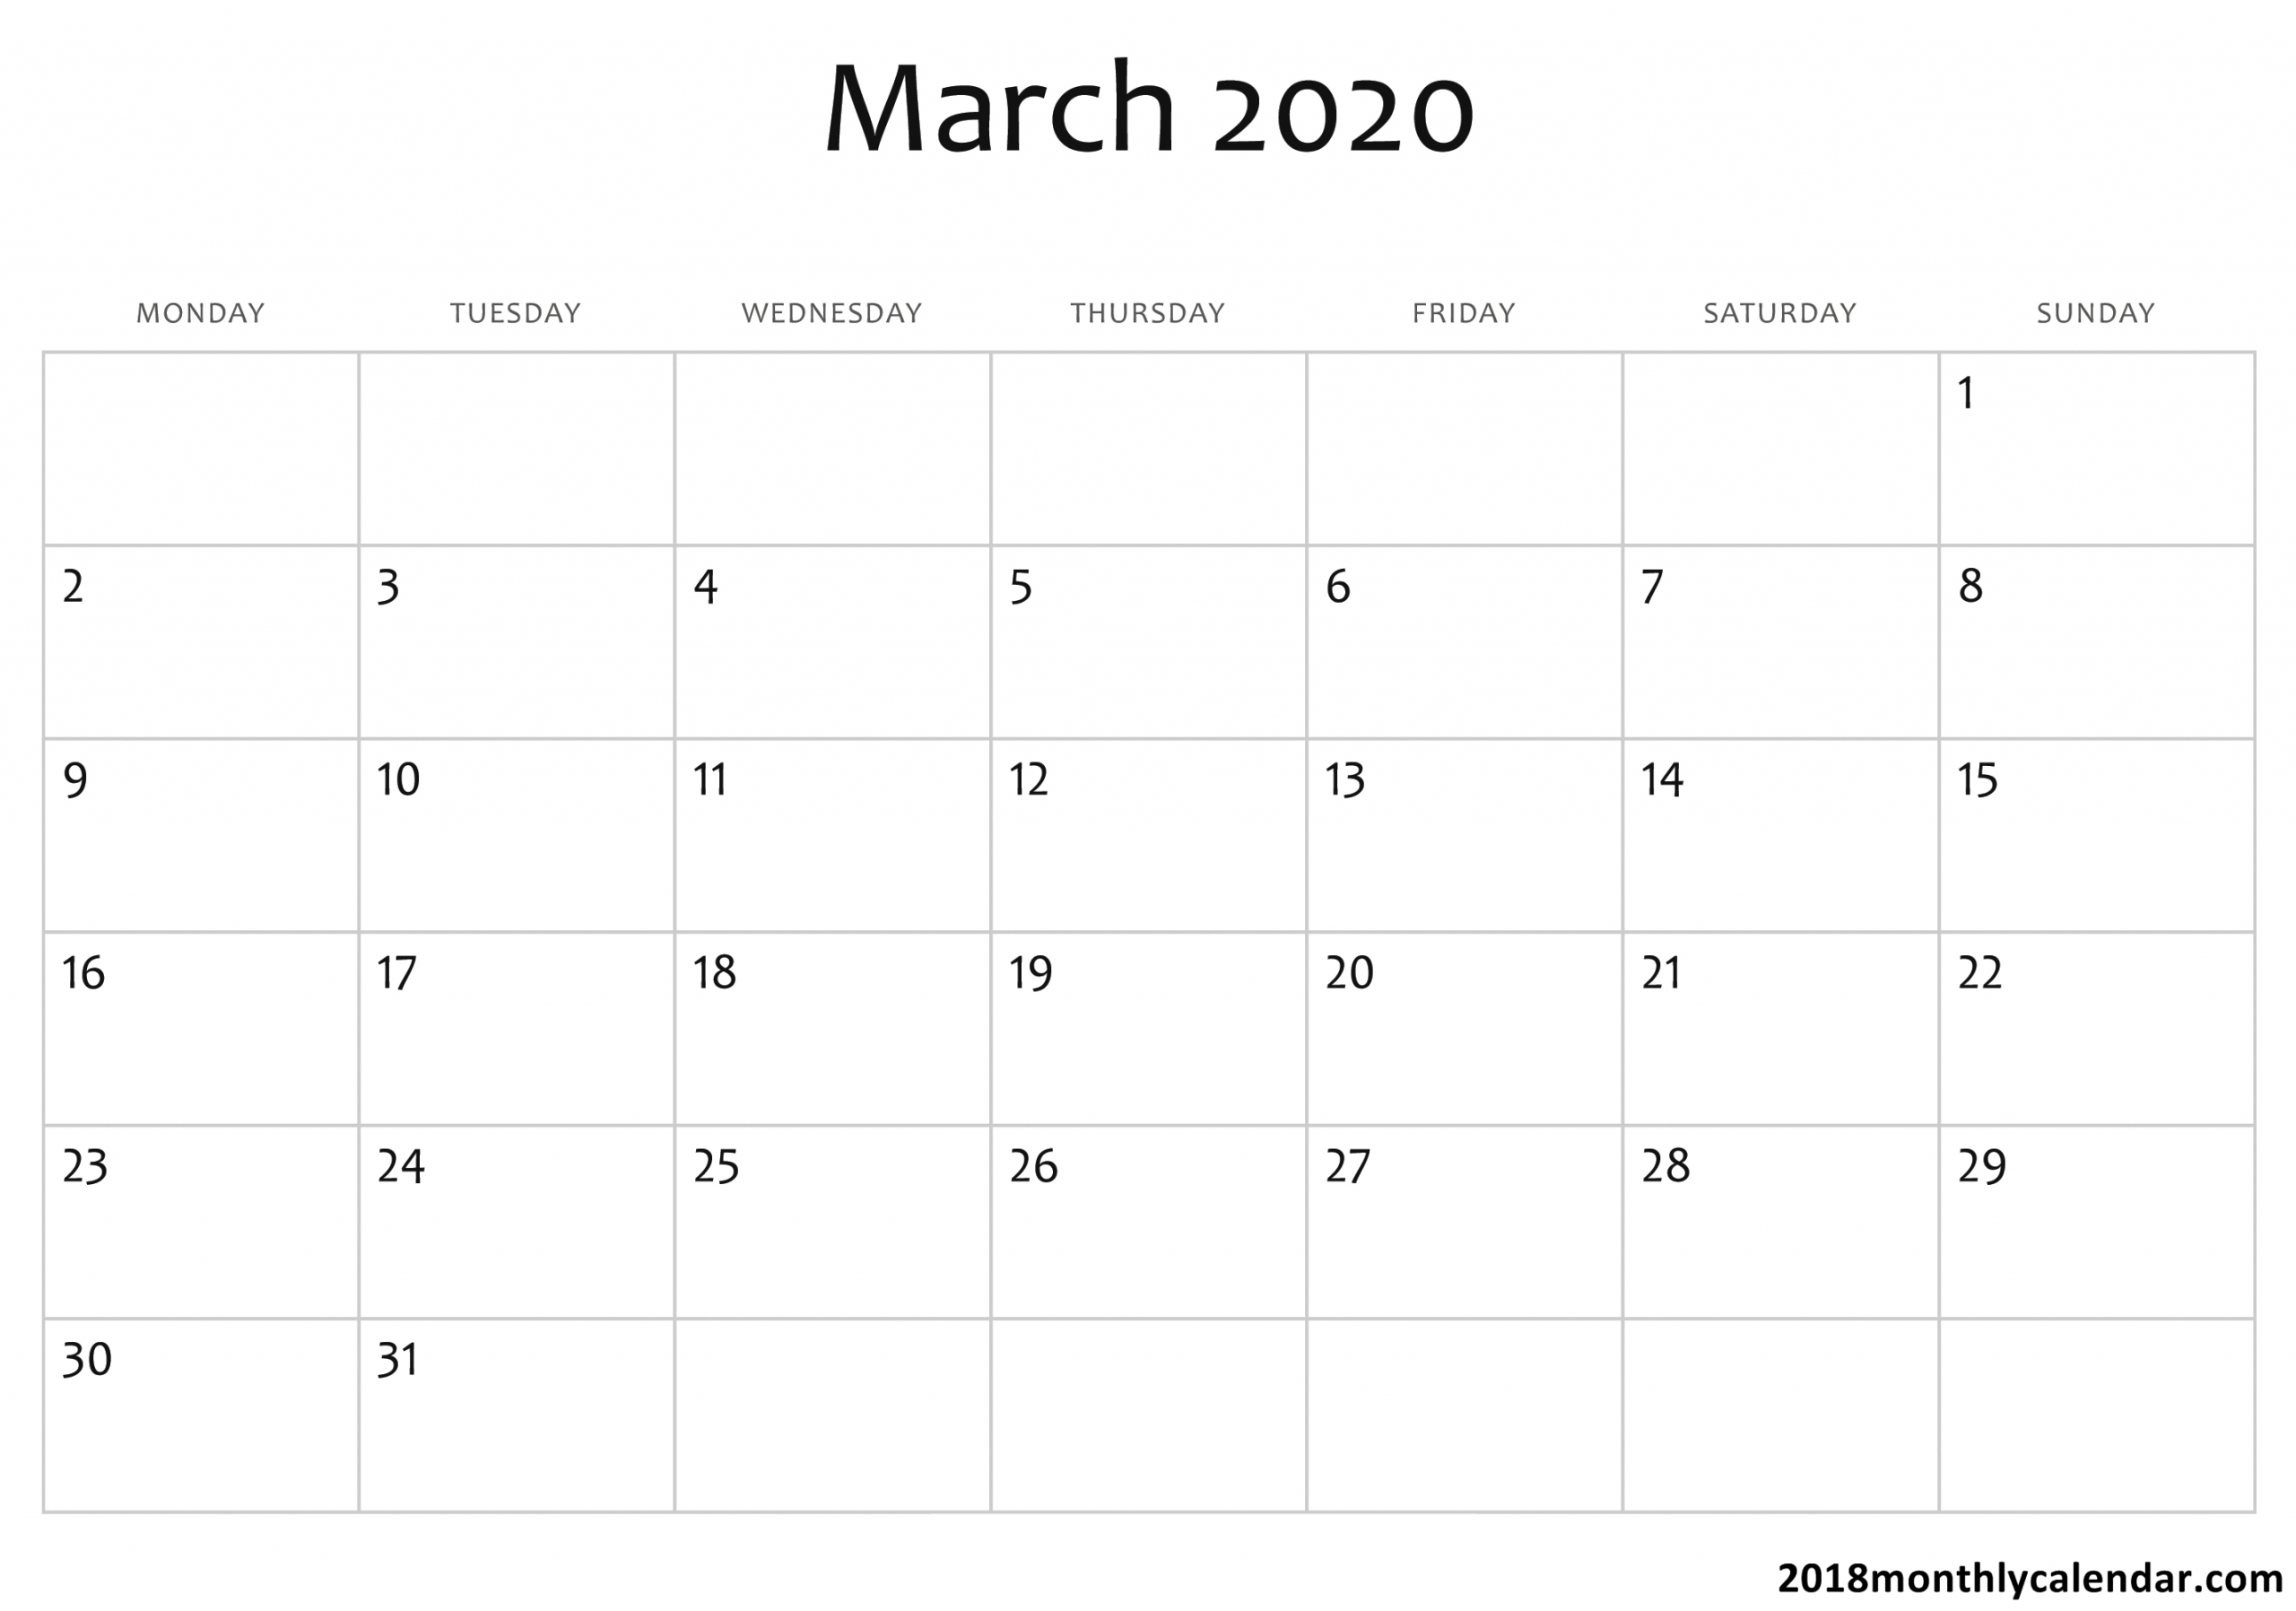 2020 Calender I Can Edit | Calendar Template Printable Calender You Cann Edit With Holidays On It